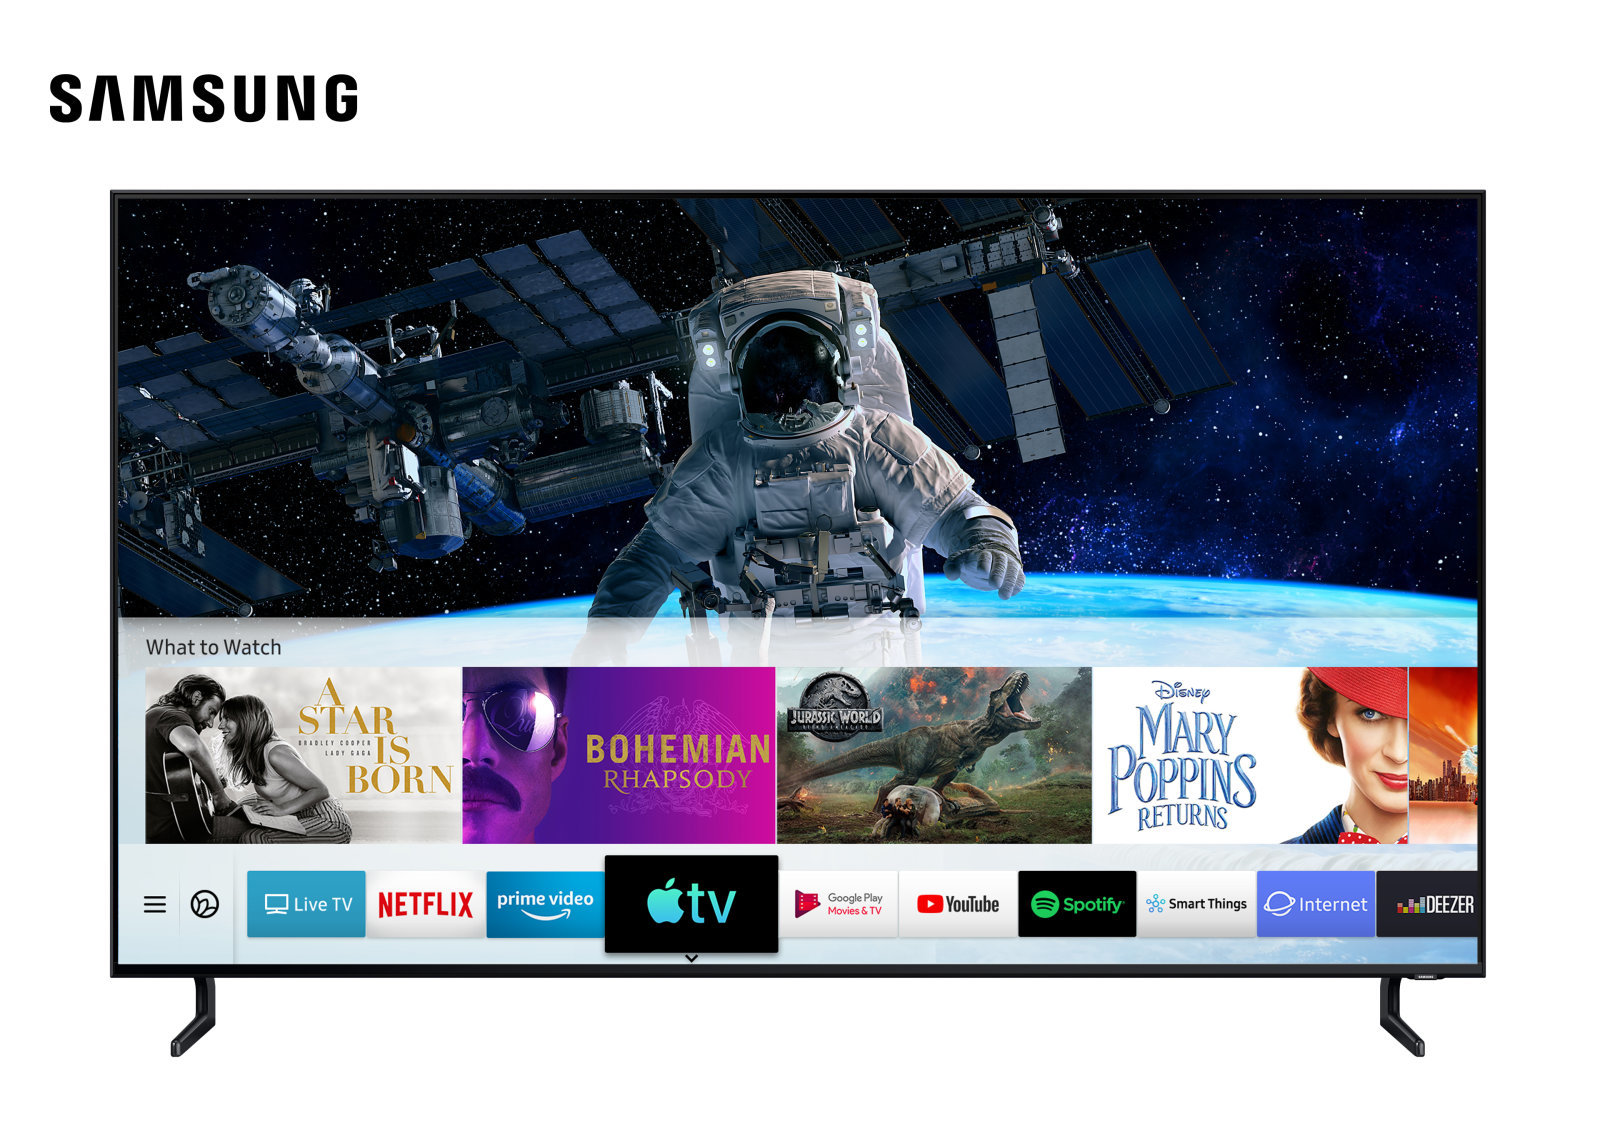 Samsung Smart TV Apple TV AirPlay 2